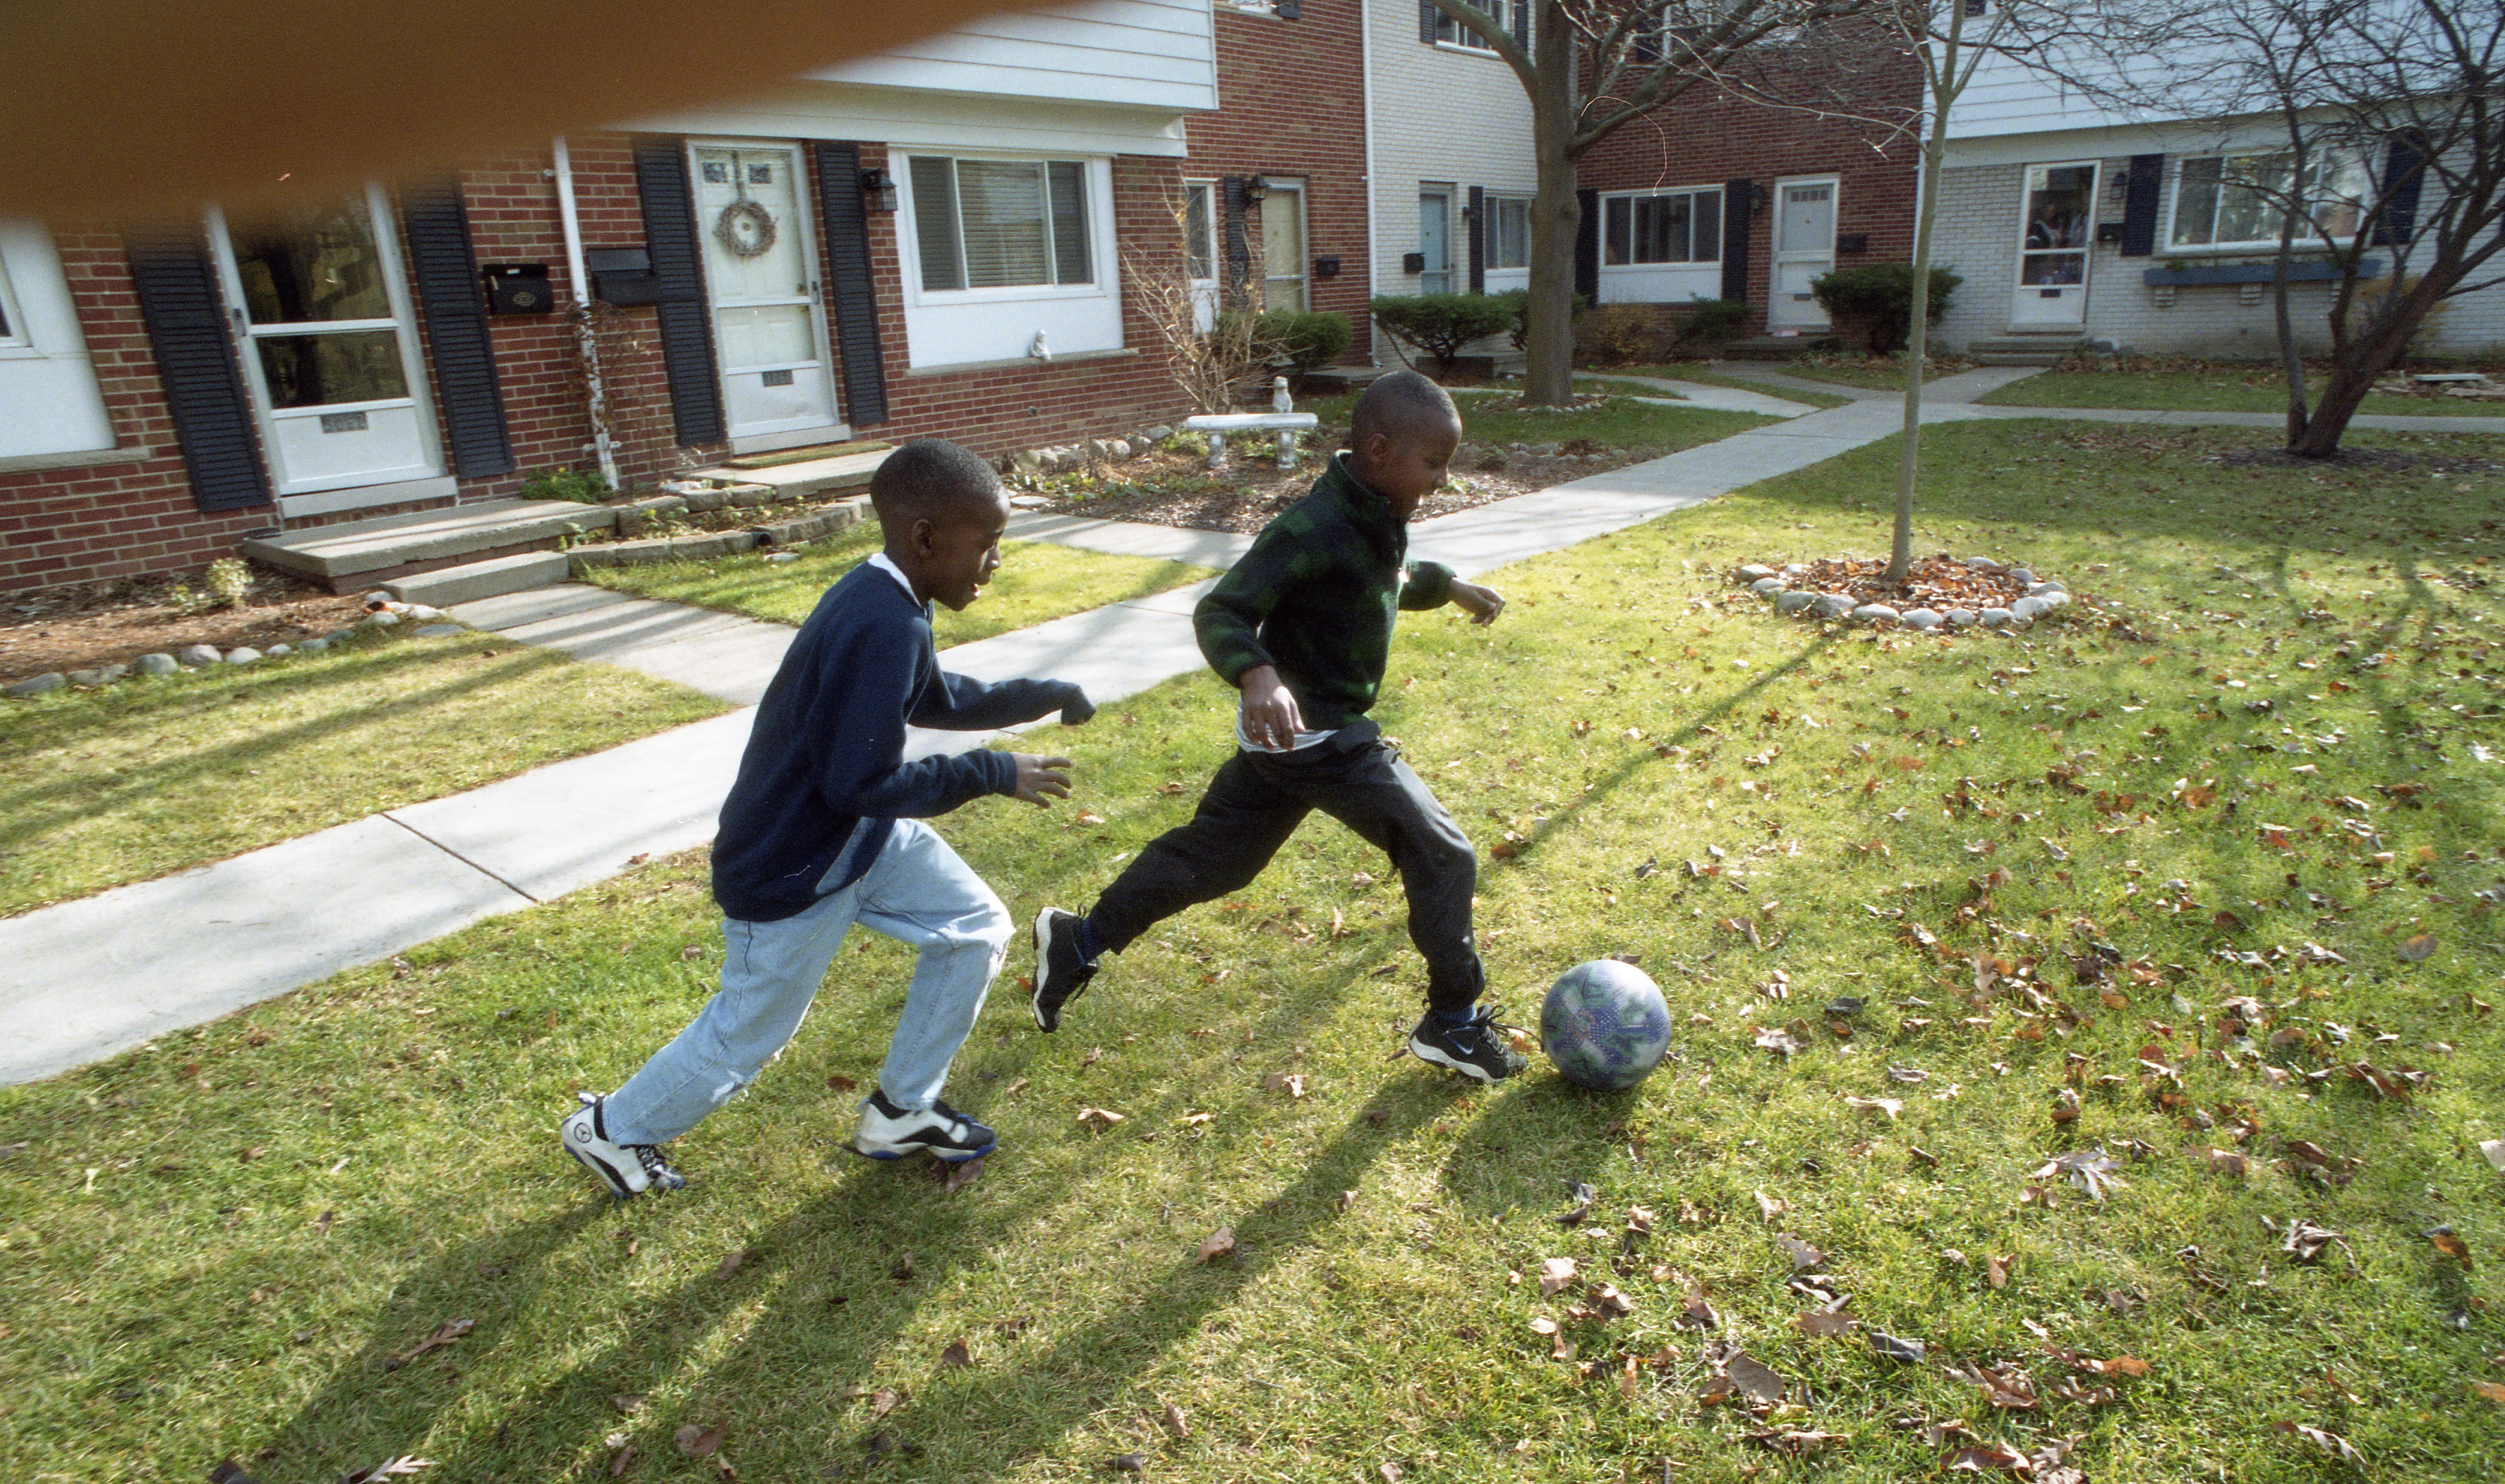 Children Playing Soccer At Colonial Square, November 1999 image